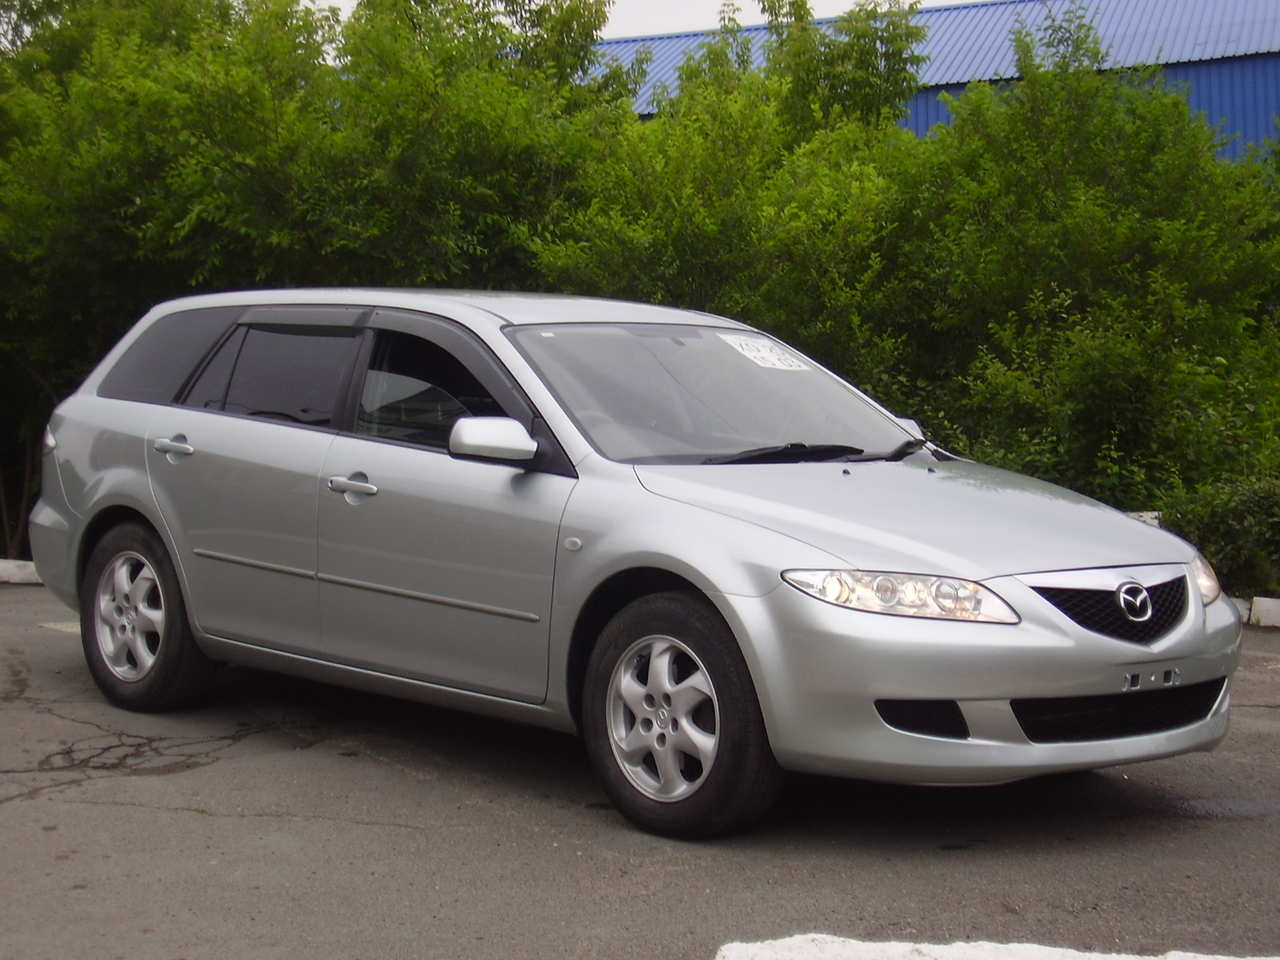 2002 Mazda Mazda 6 sport wagon – pictures, information and specs ...